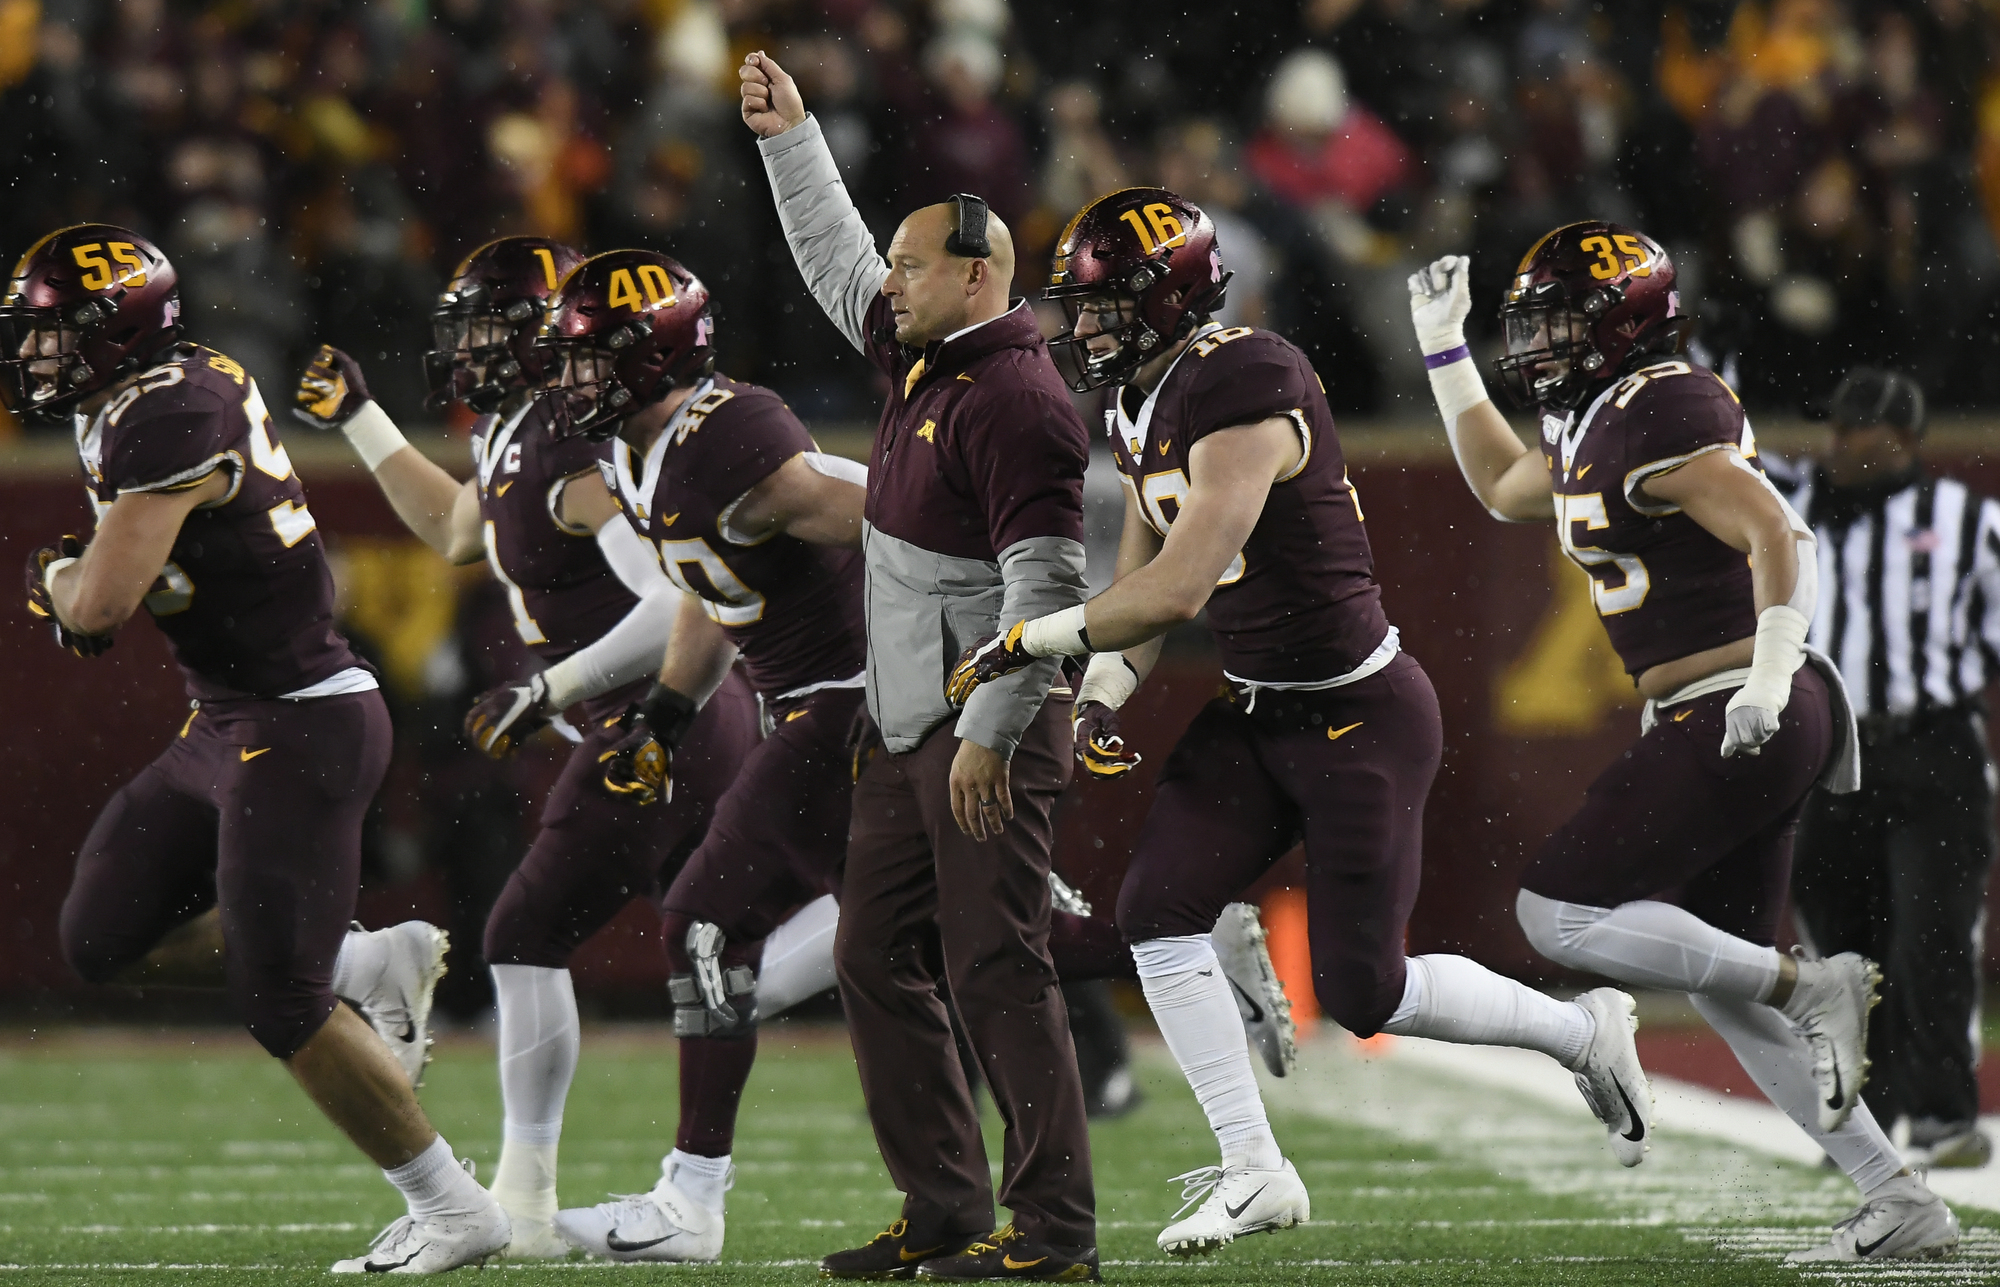 Gophers special teams are still a work in progress